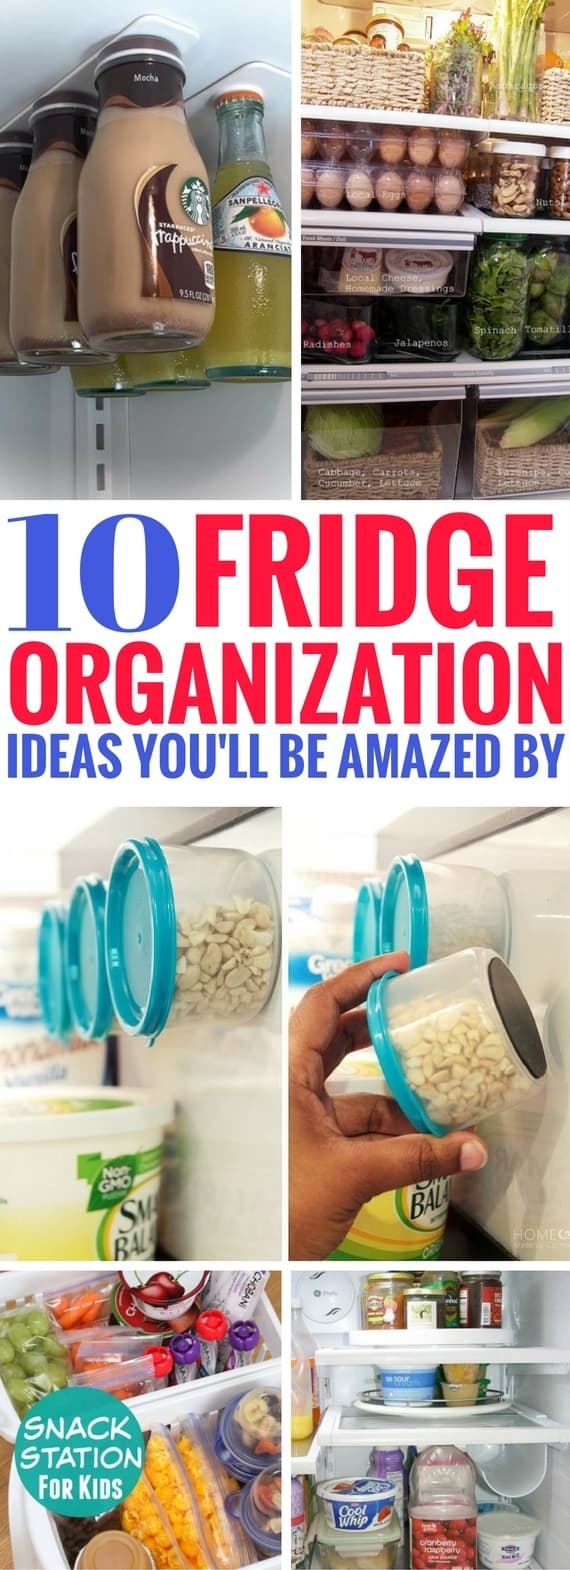 Genius-Fridge-Organization-Hacks